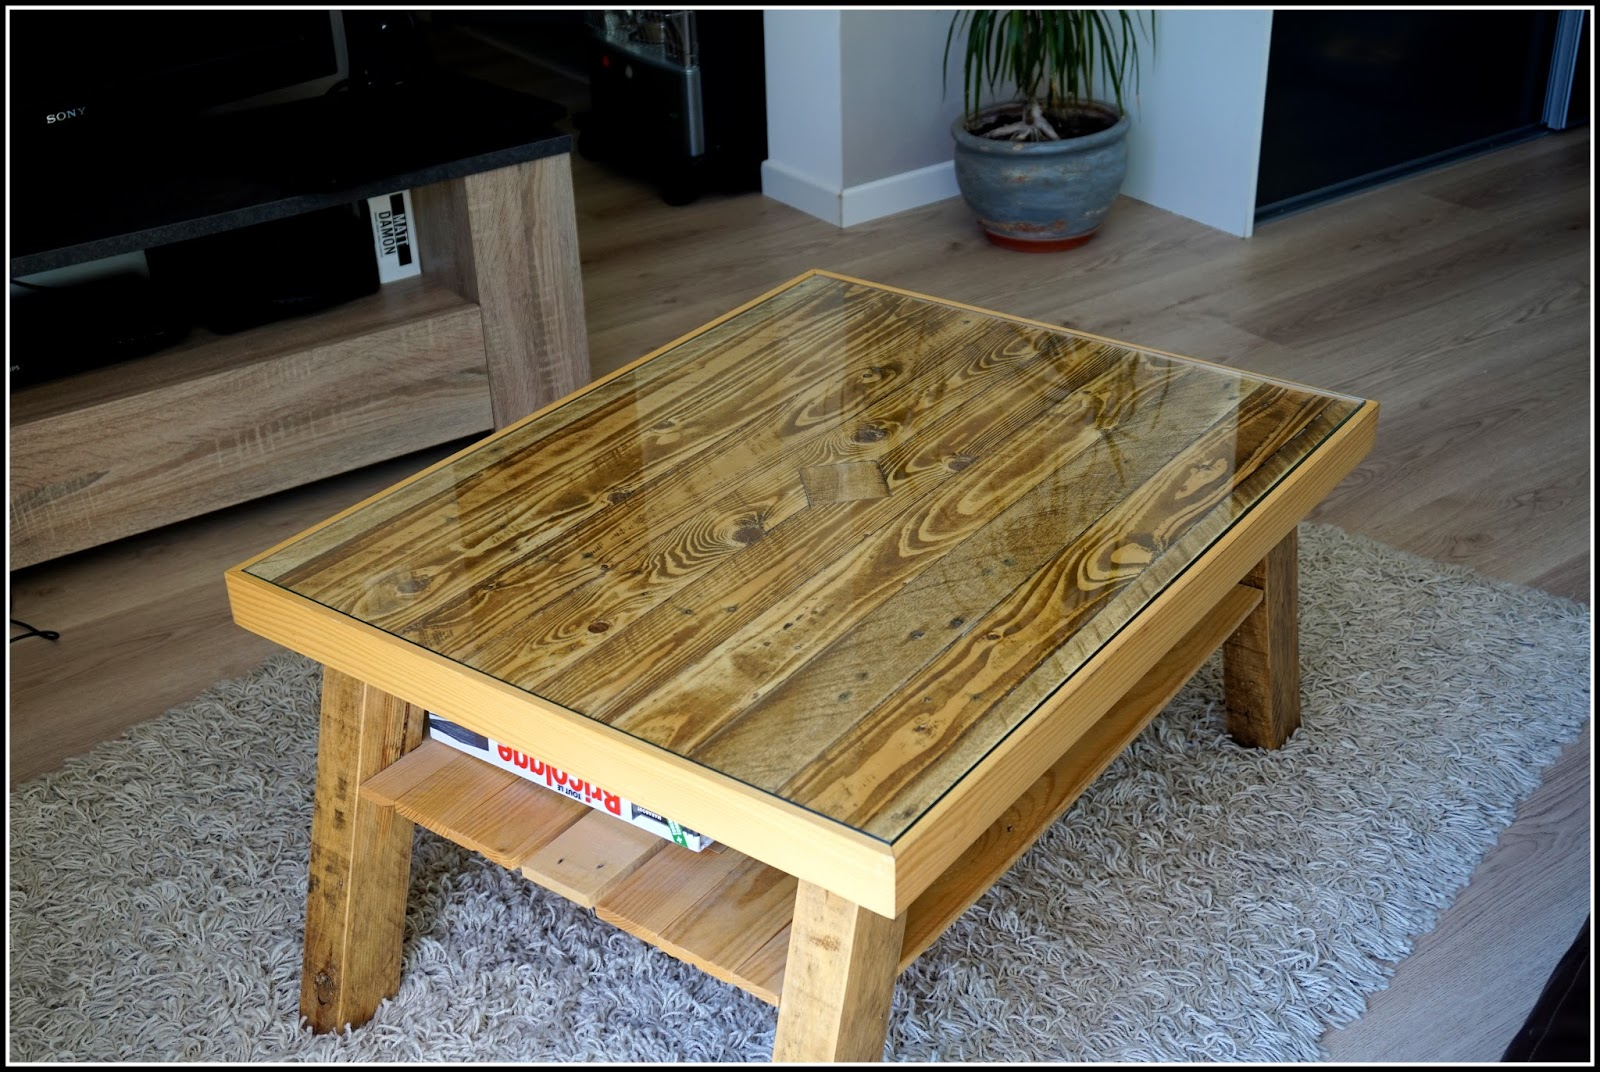 Comment faire une table basse en palette - Creer sa table basse ...